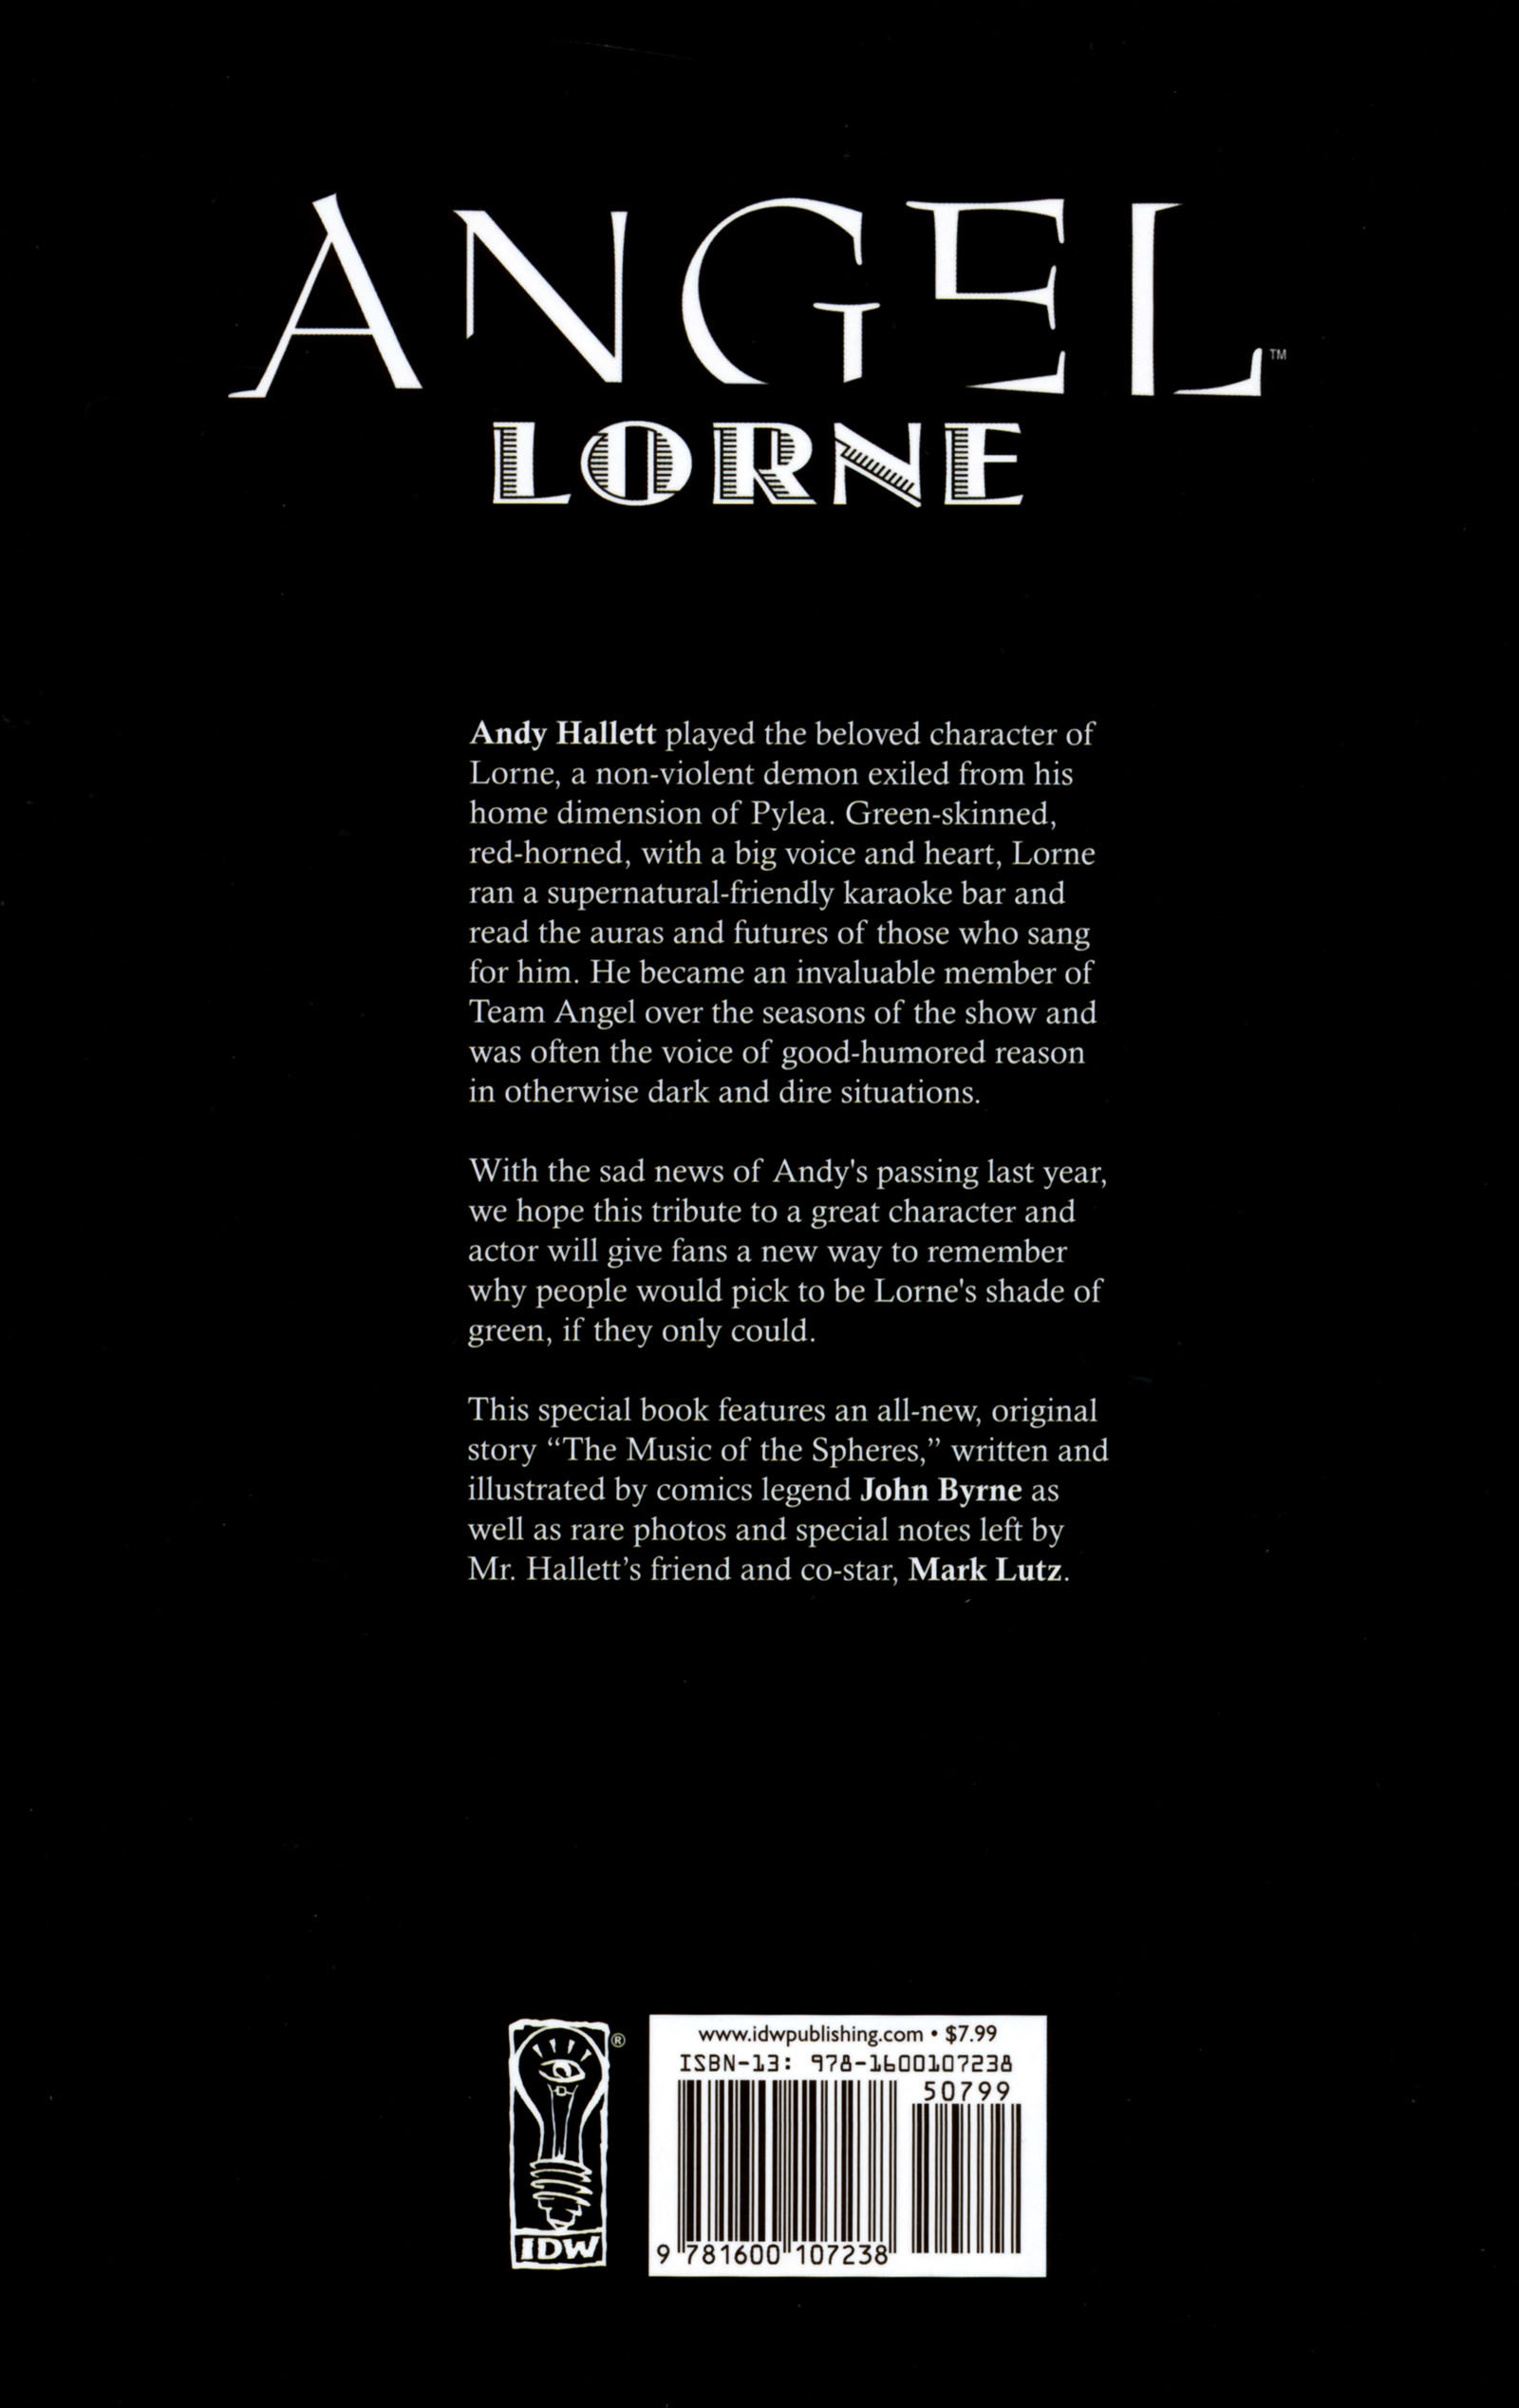 Read online Angel Special: Lorne comic -  Issue # Full - 51